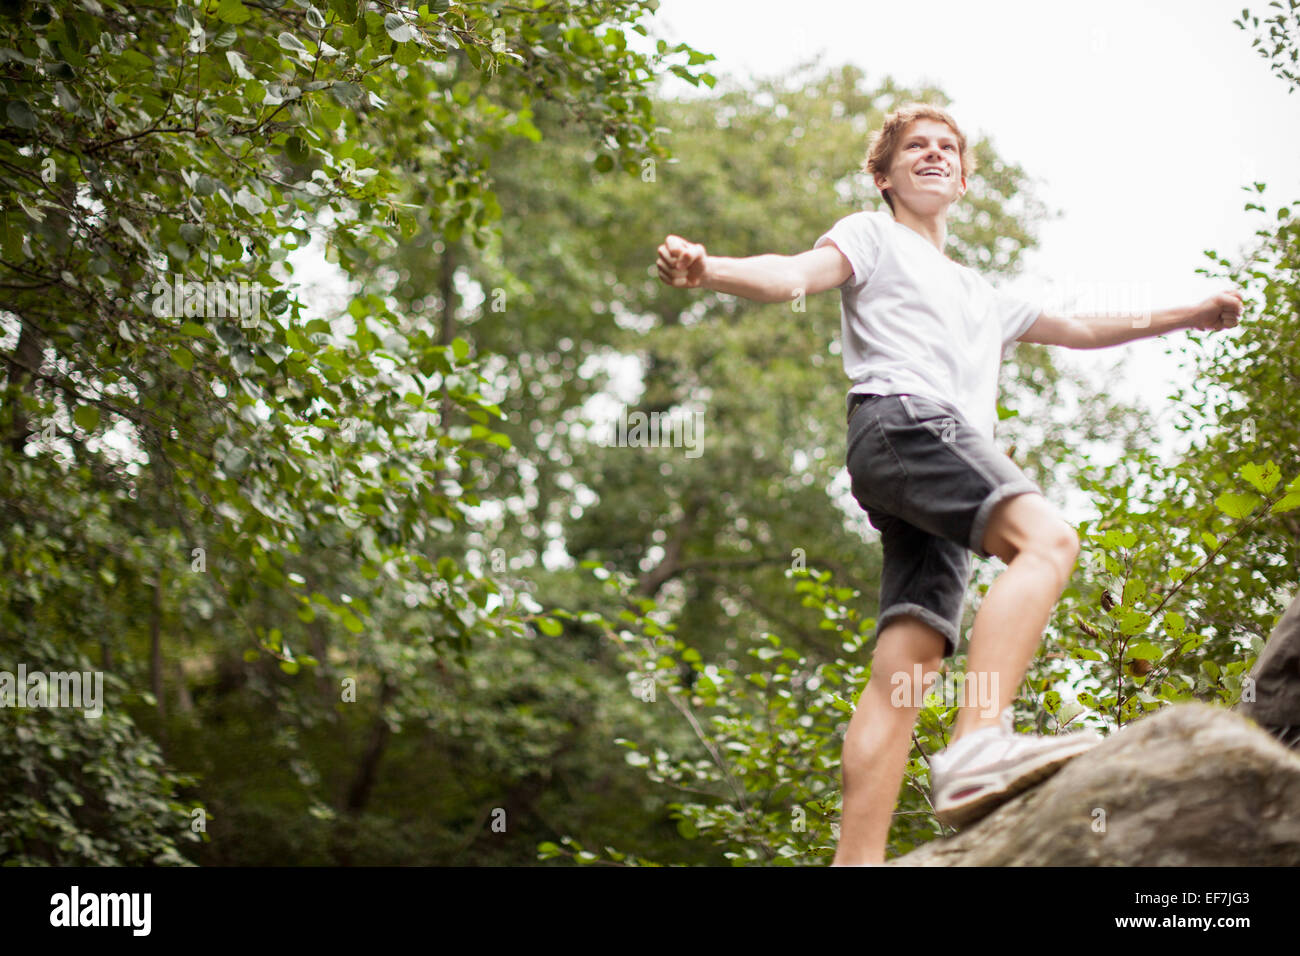 Teenage boy playing in a park - Stock Image